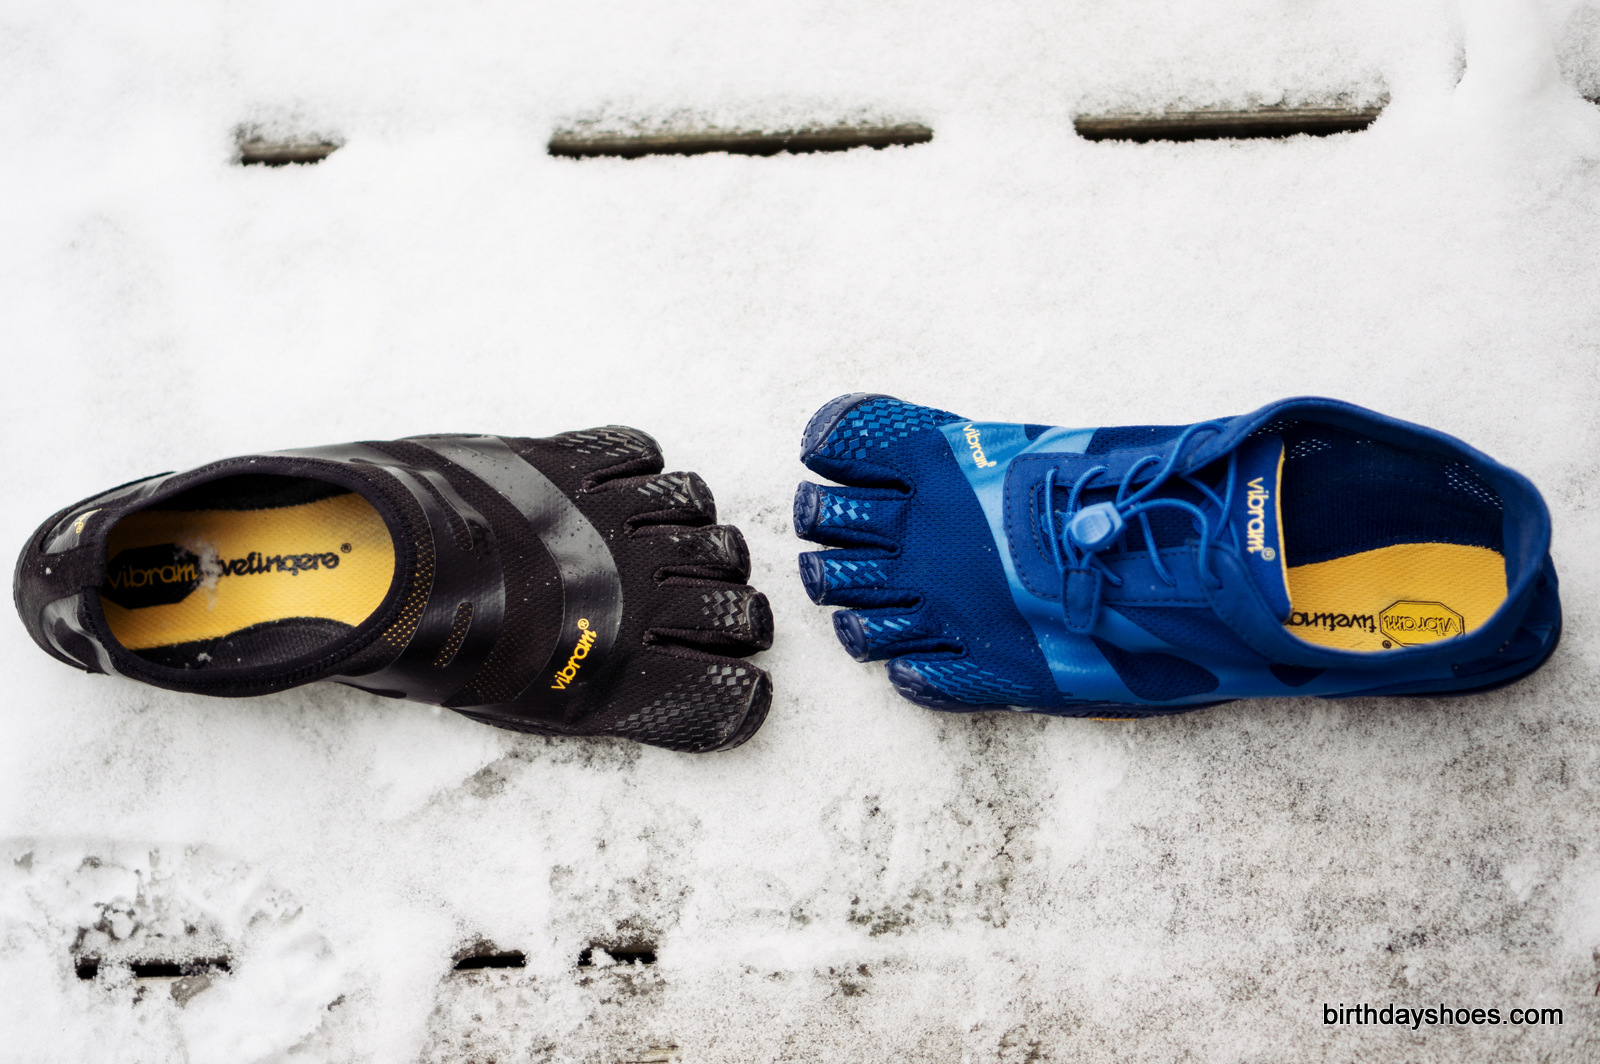 The FiveFingers EL-X in black on the left; EL-X LS (for Youth) / KSO EVO FiveFingers in blue on the right.